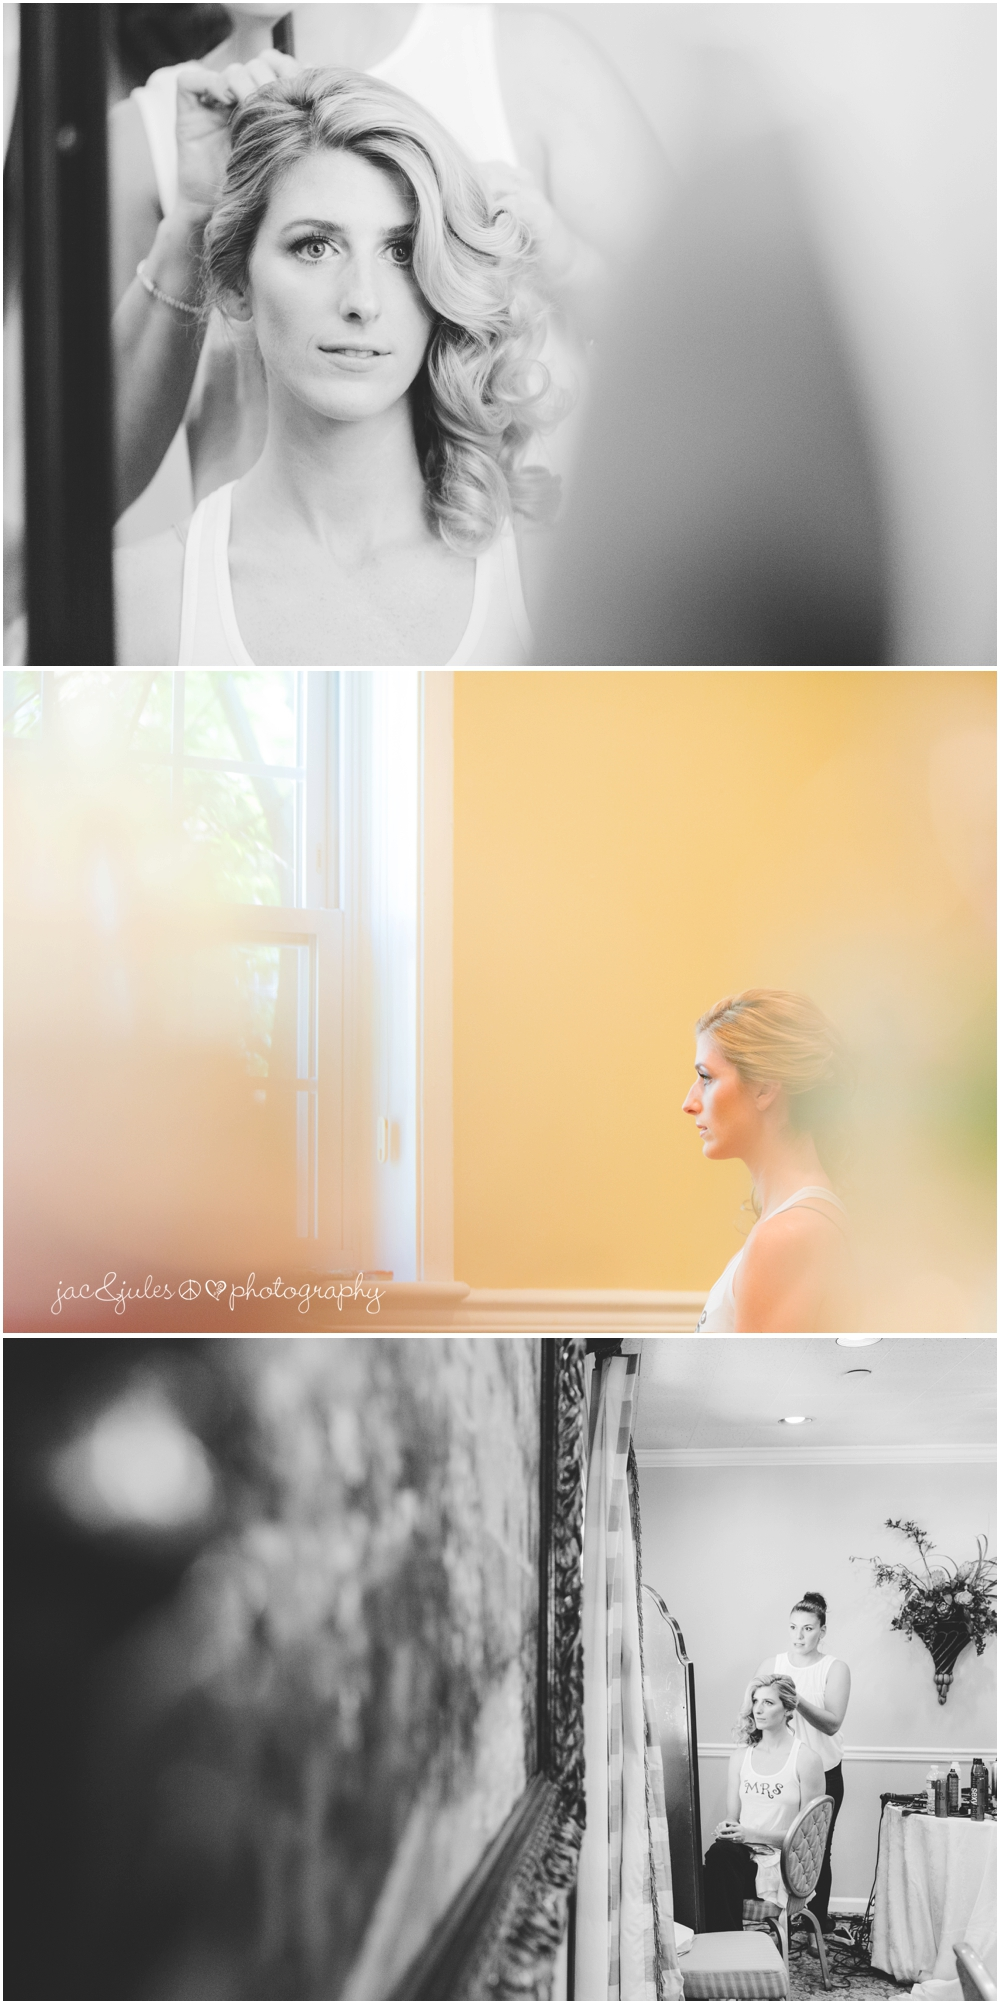 jacnjules photographs bride getting ready at nassau inn in princeton nj